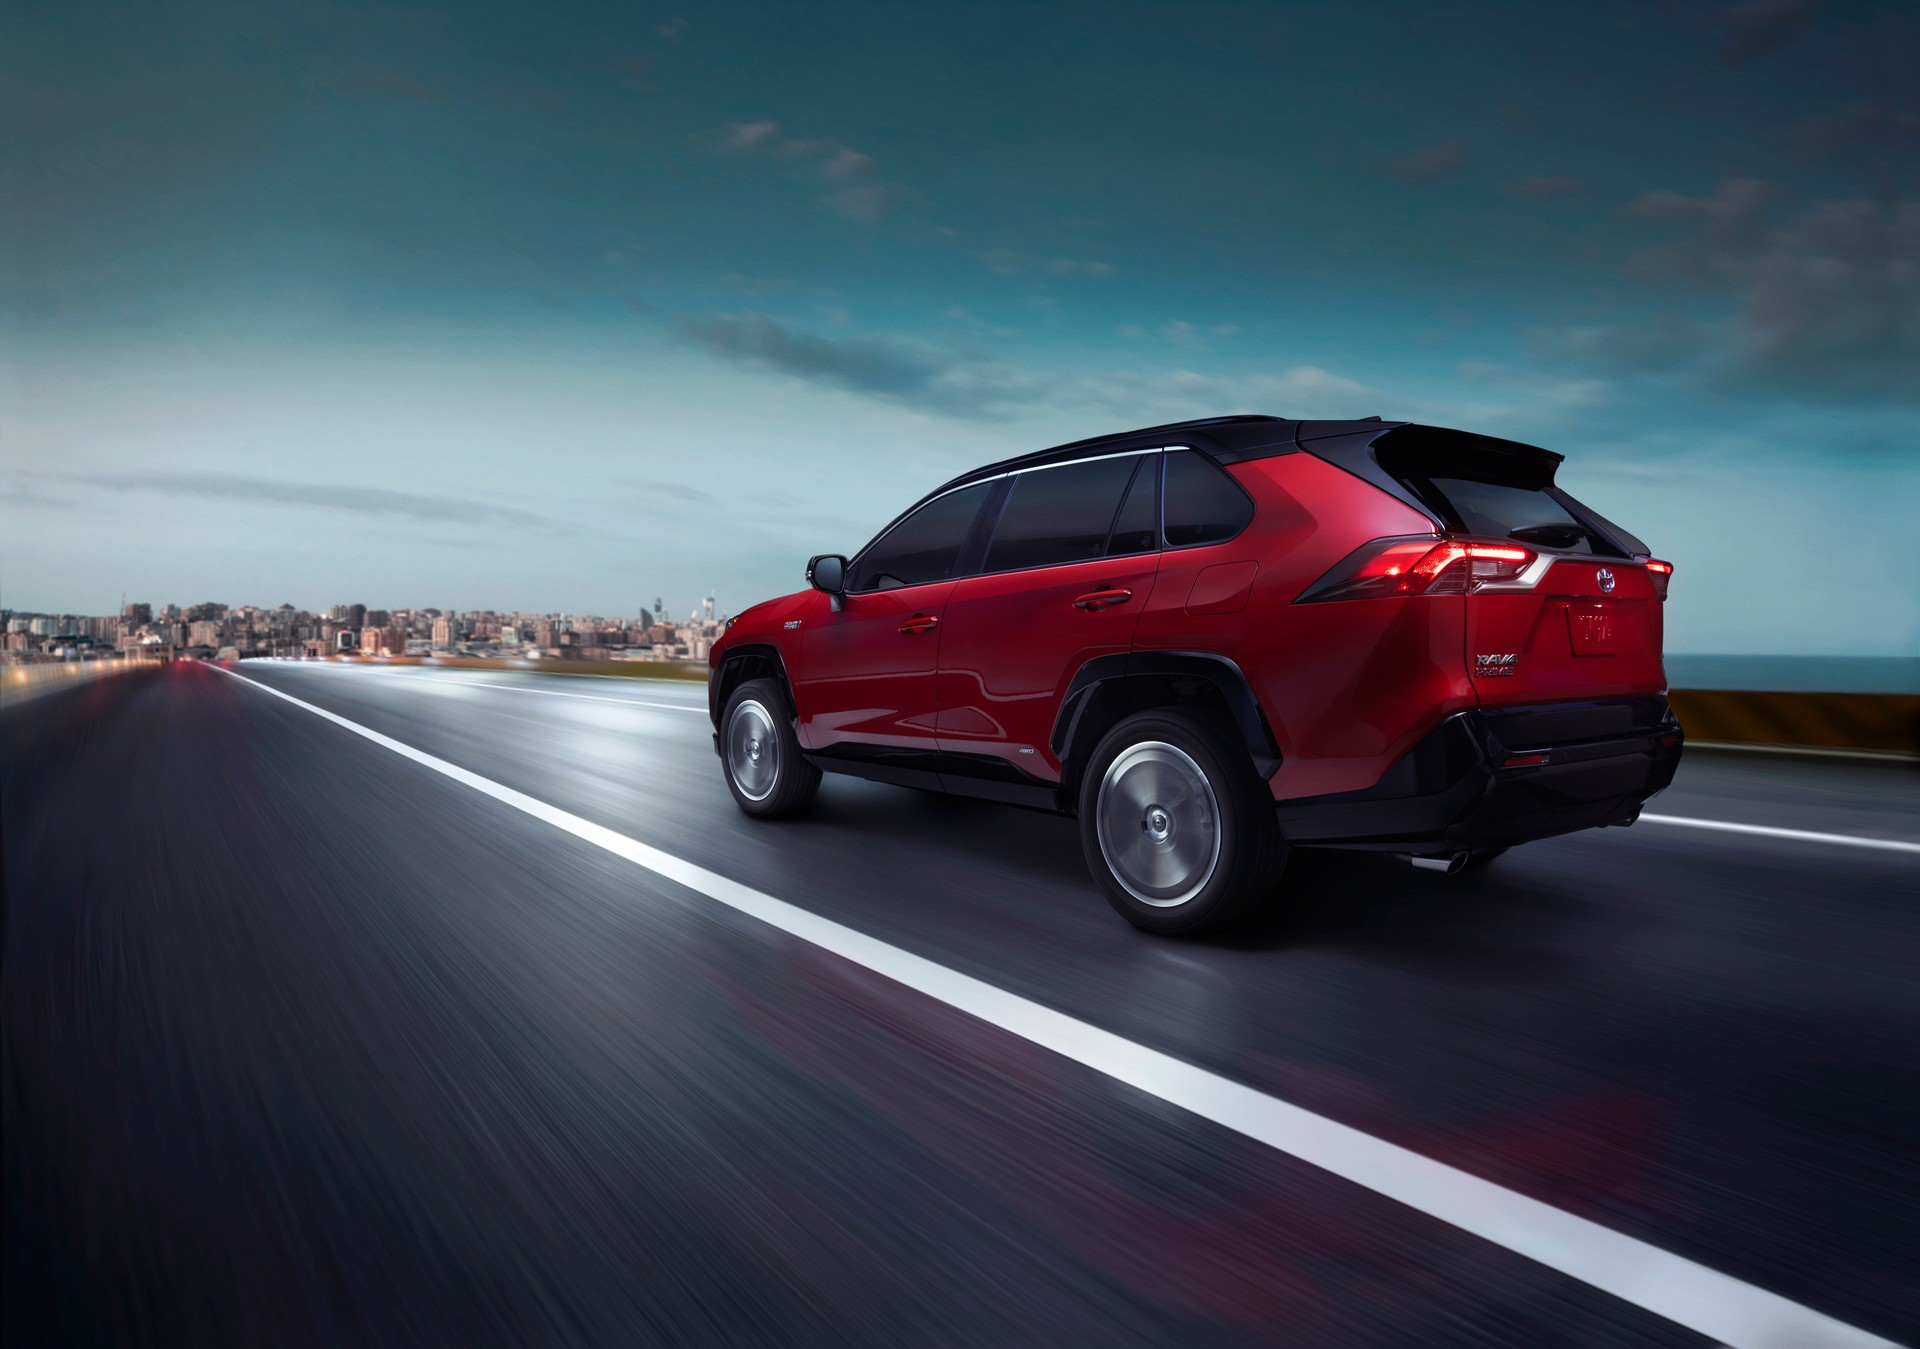 Toyota RAV4 plug-in hybrid revealed: Shocking power from crossover SUV